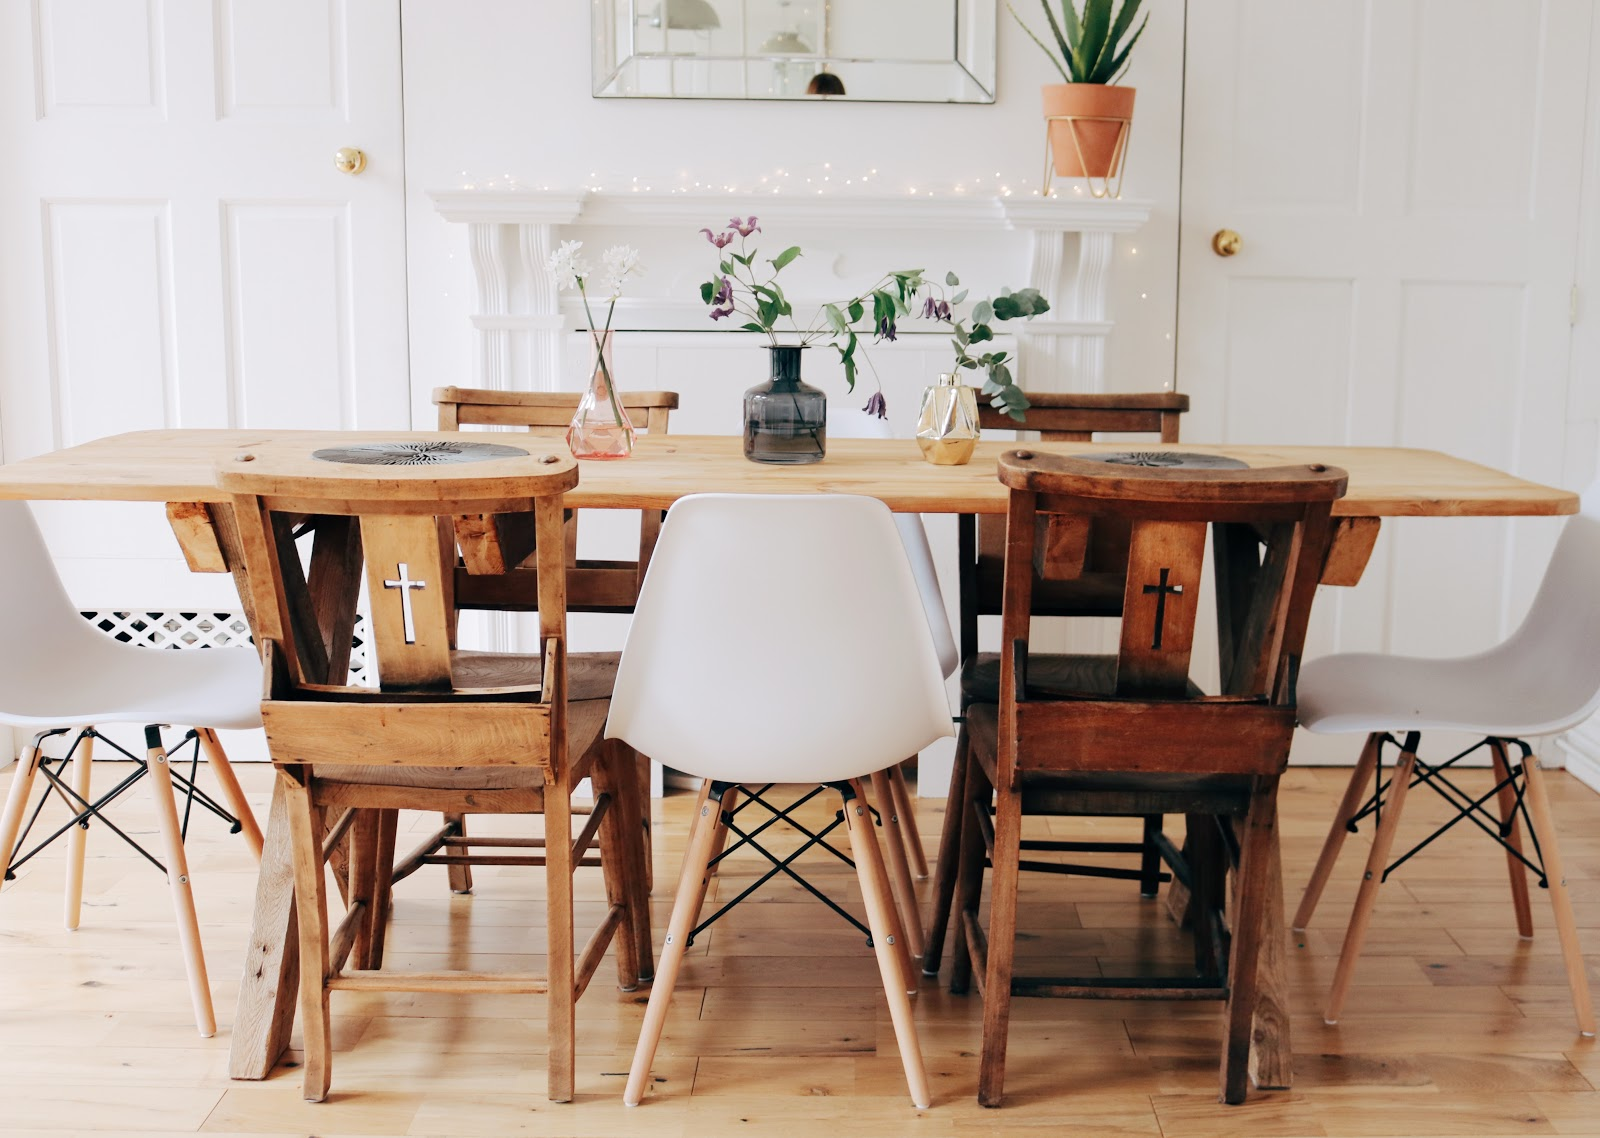 Design Collection Modern Rustic Dining Room 42 New Inspiration